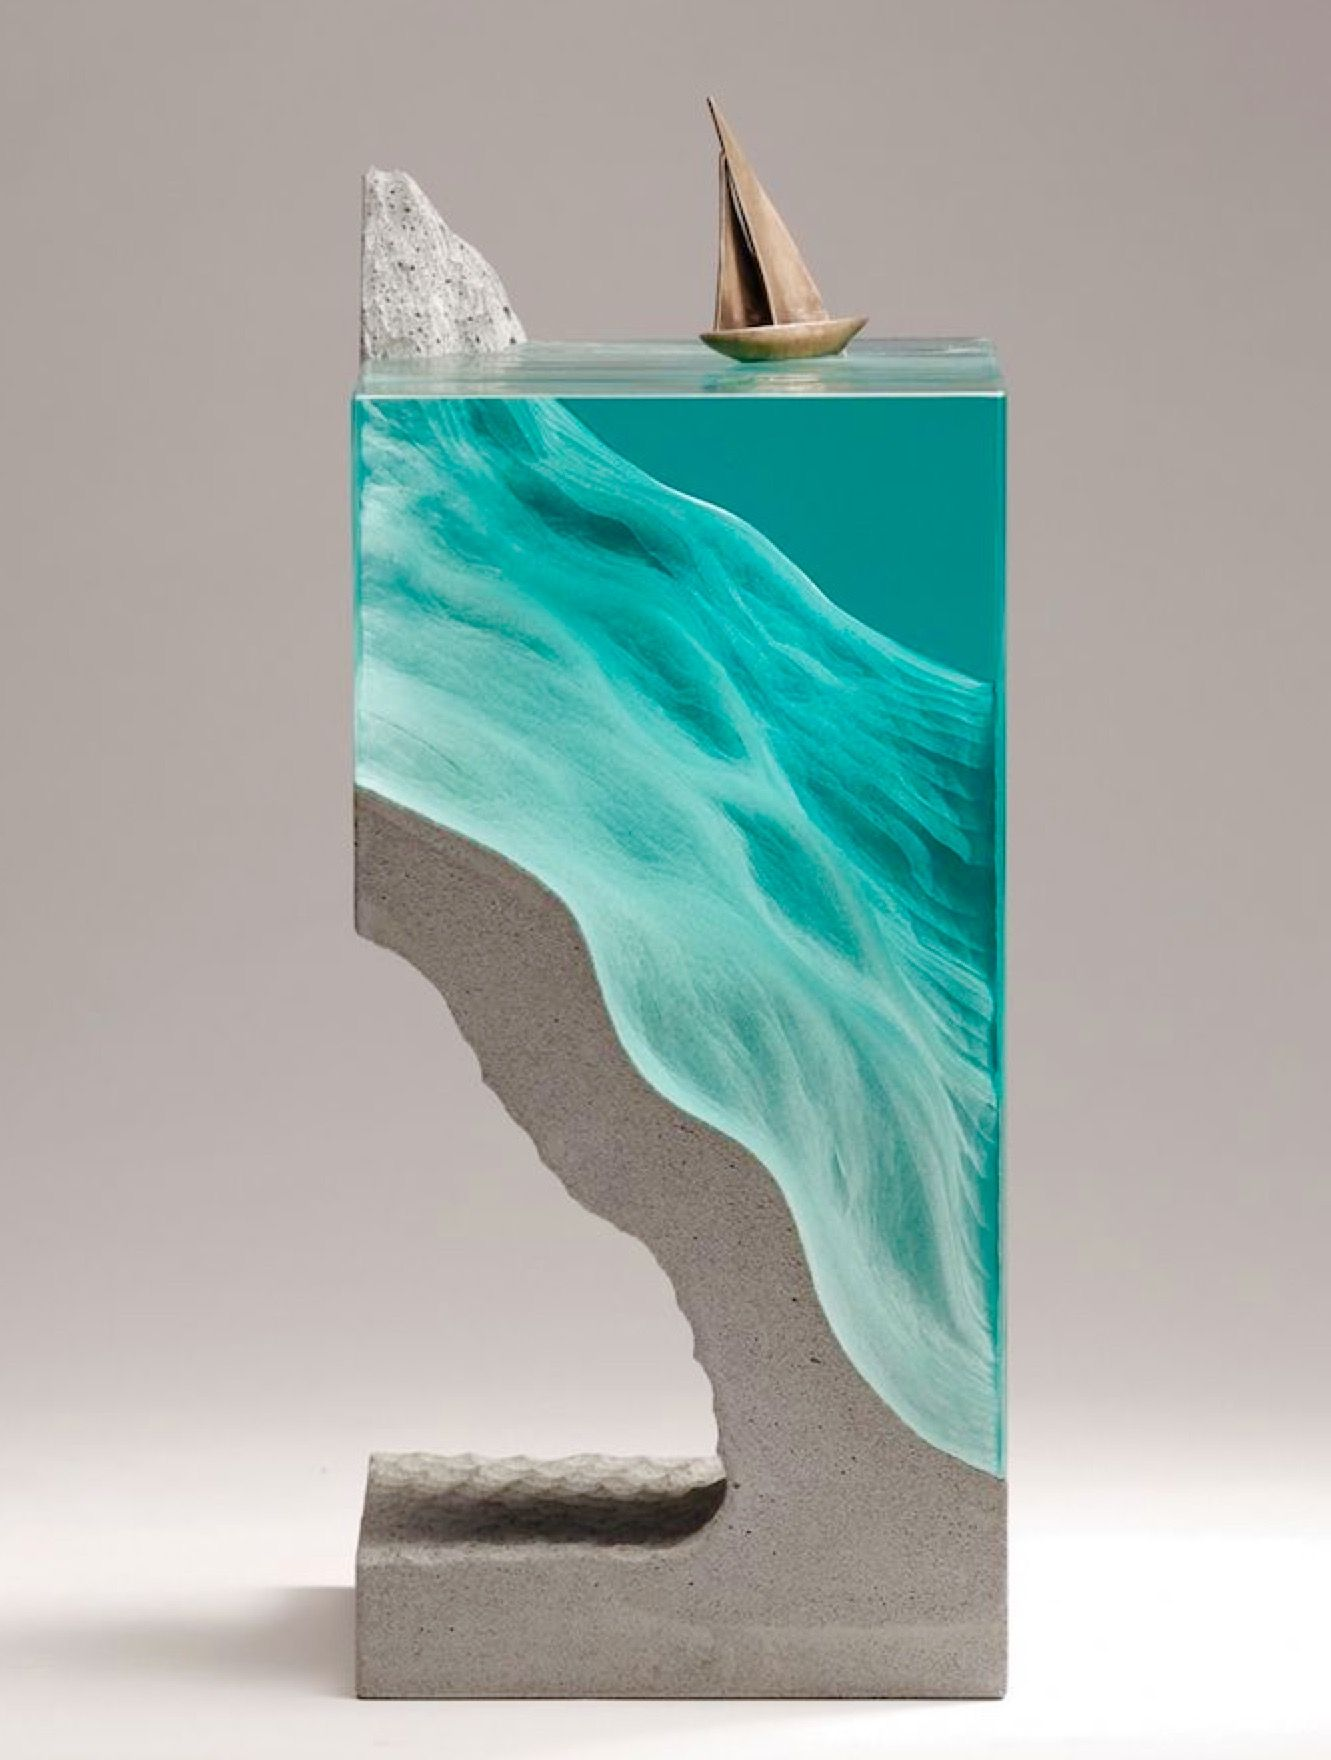 Small Sea Replica Concrete And Glass Small Magical Worlds - Incredible layered glass table mimics oceans depths